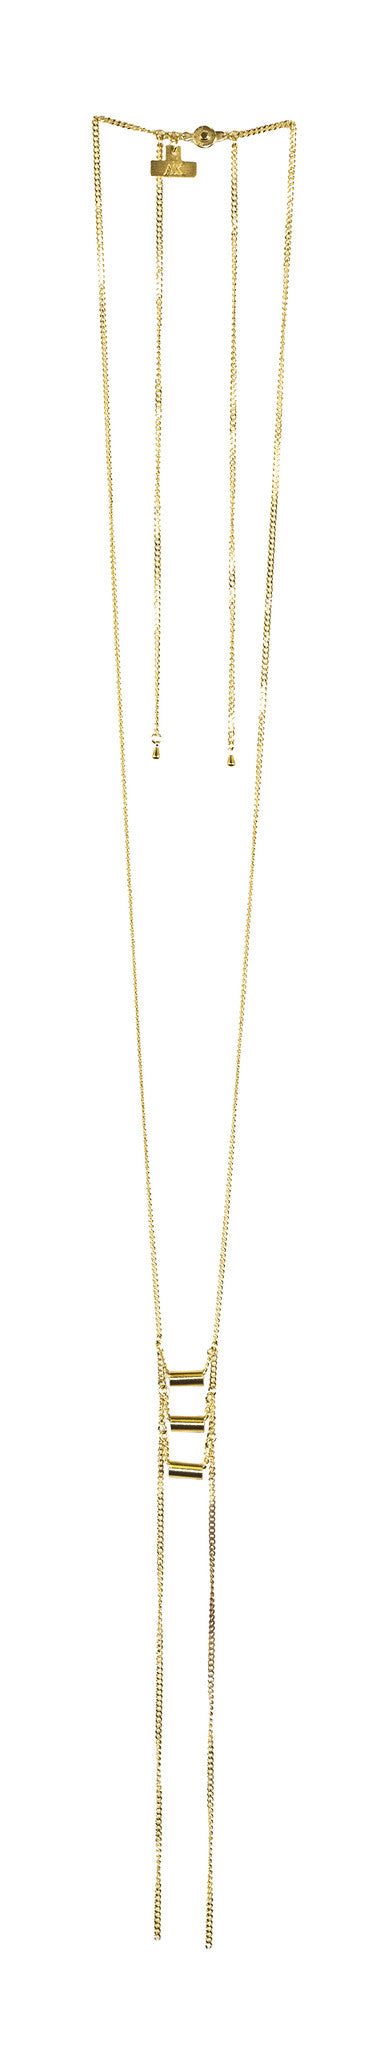 initiation necklace - gold